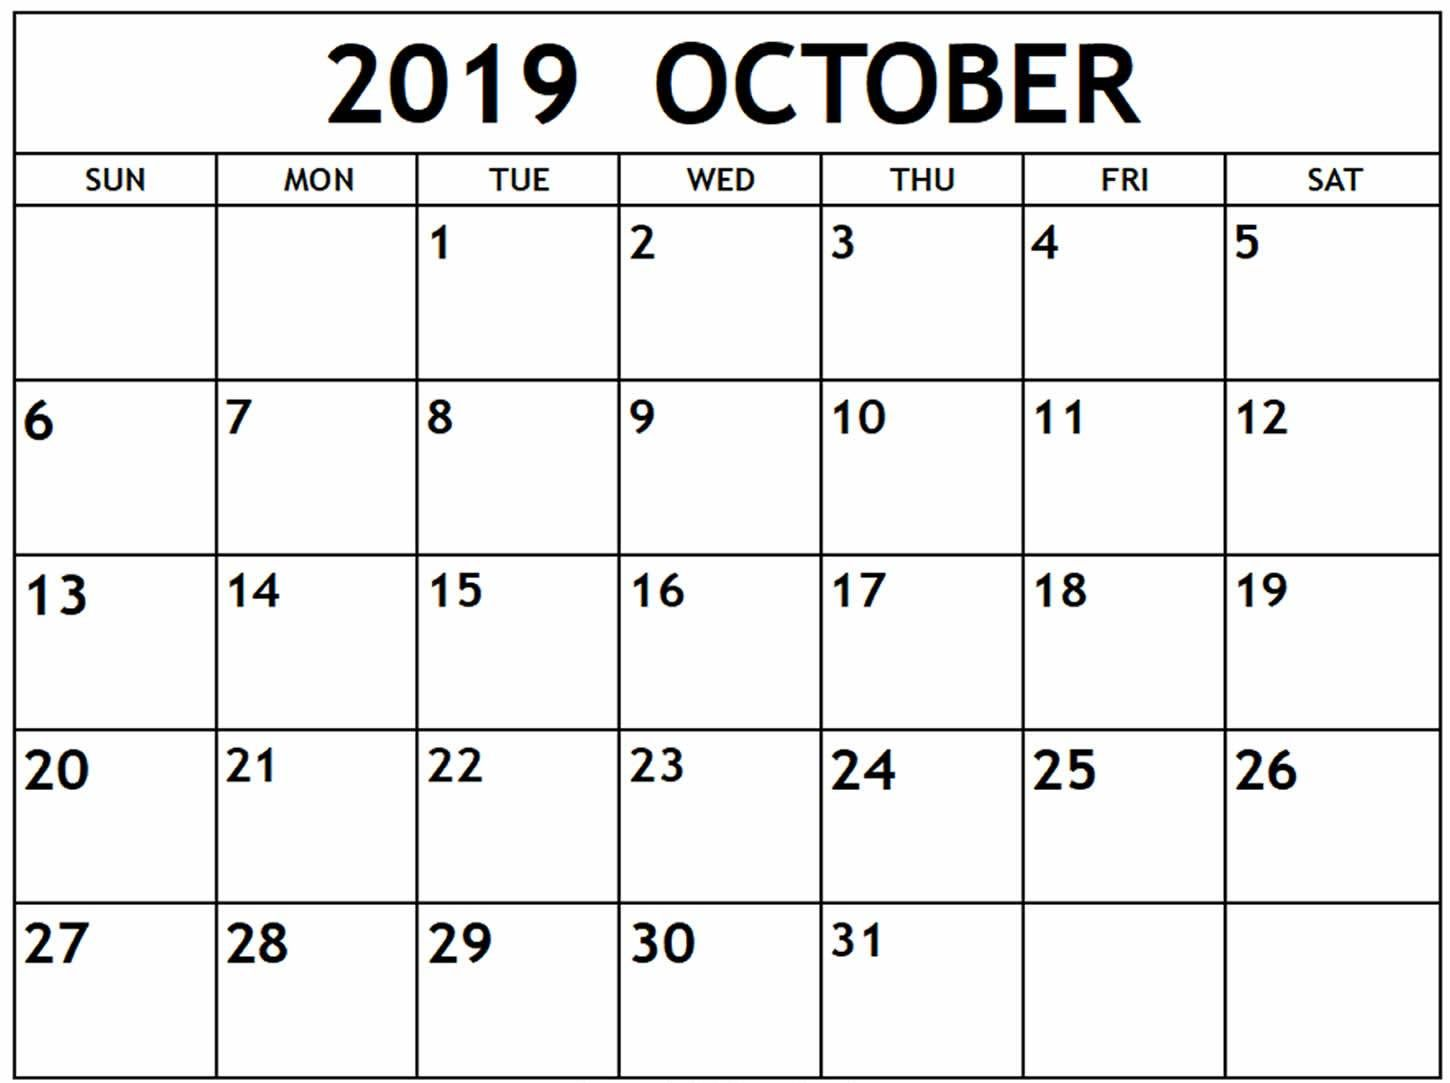 Fillable Calendar For October 2019 Free Printable Calendar